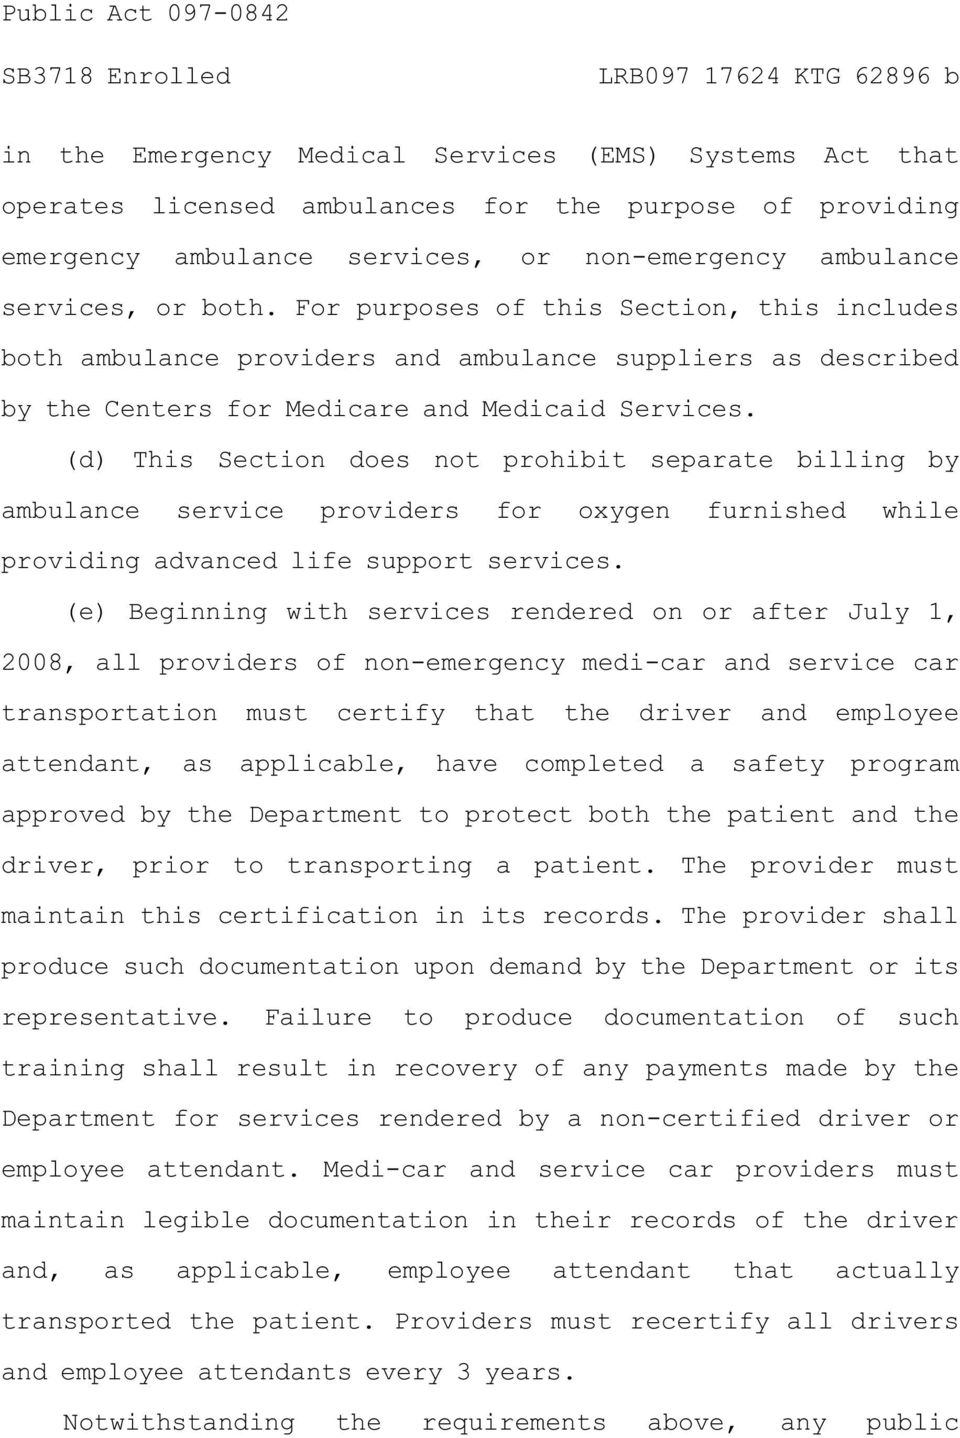 (d) This Section does not prohibit separate billing by ambulance service providers for oxygen furnished while providing advanced life support services.